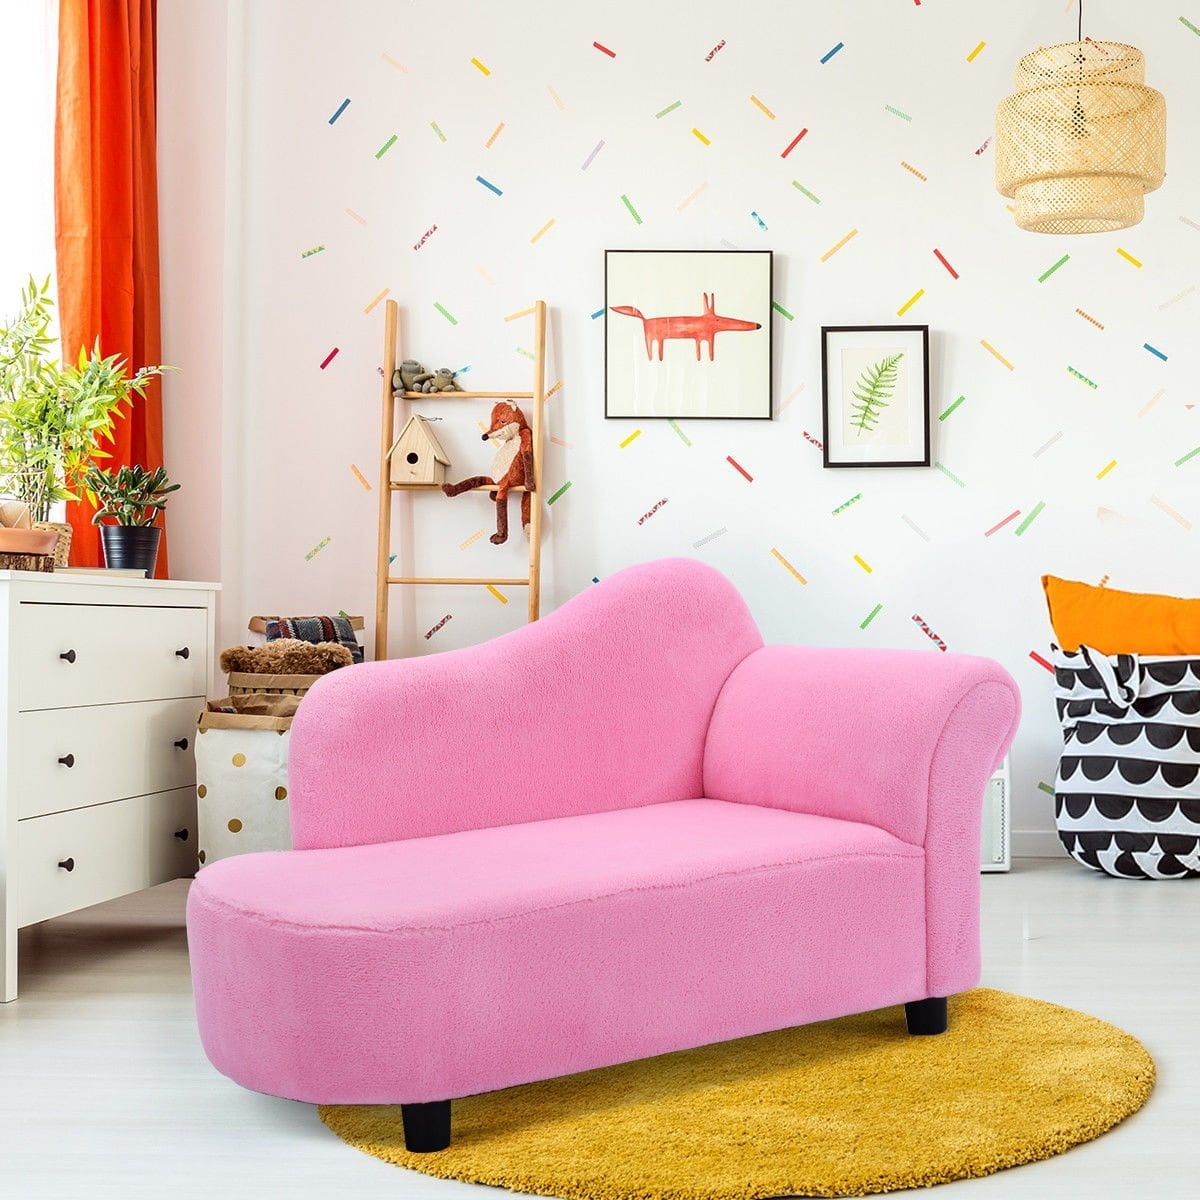 way kids sofa armrest chair couch lounge pink free marble accent table end tables round glass top decorative storage cabinets half moon mirrored pottery barn kitchen metal garden